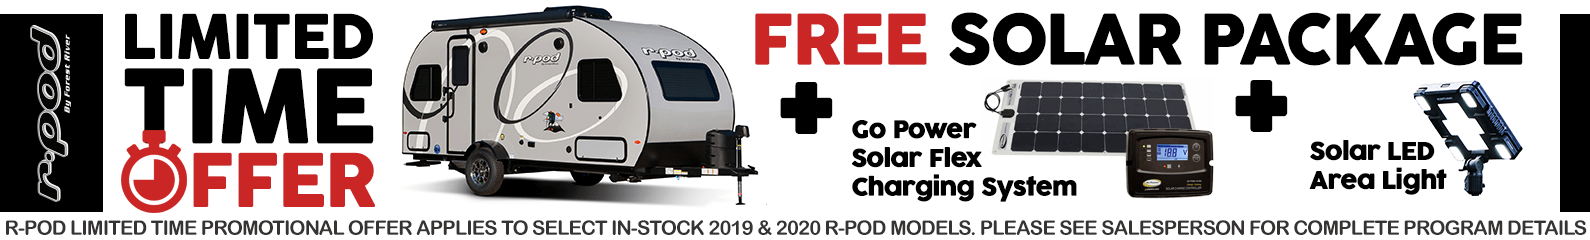 R-Pod Free Solar Package Promotion